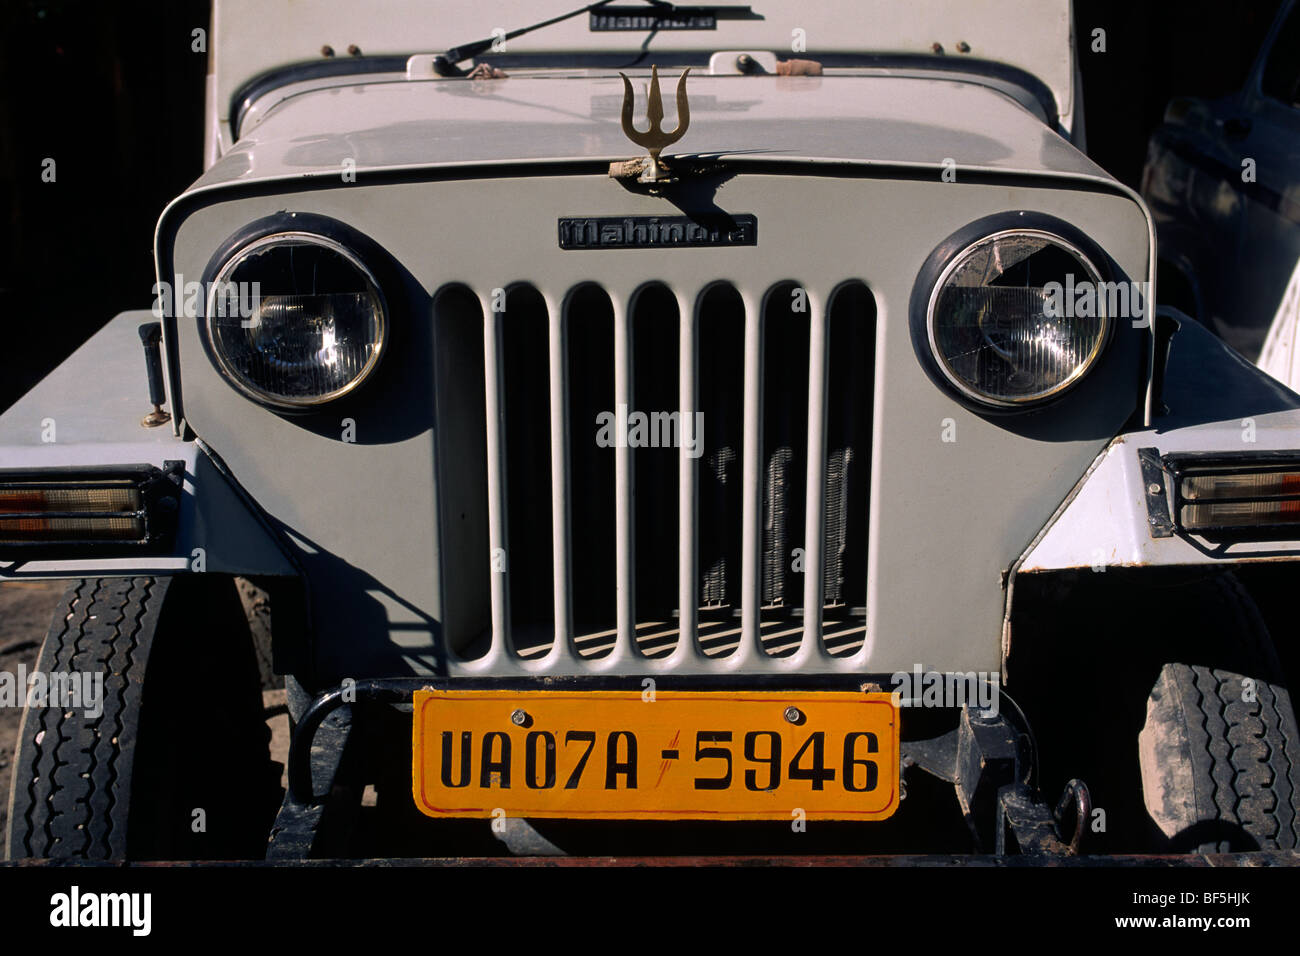 india, rishikesh, car plate - Stock Image